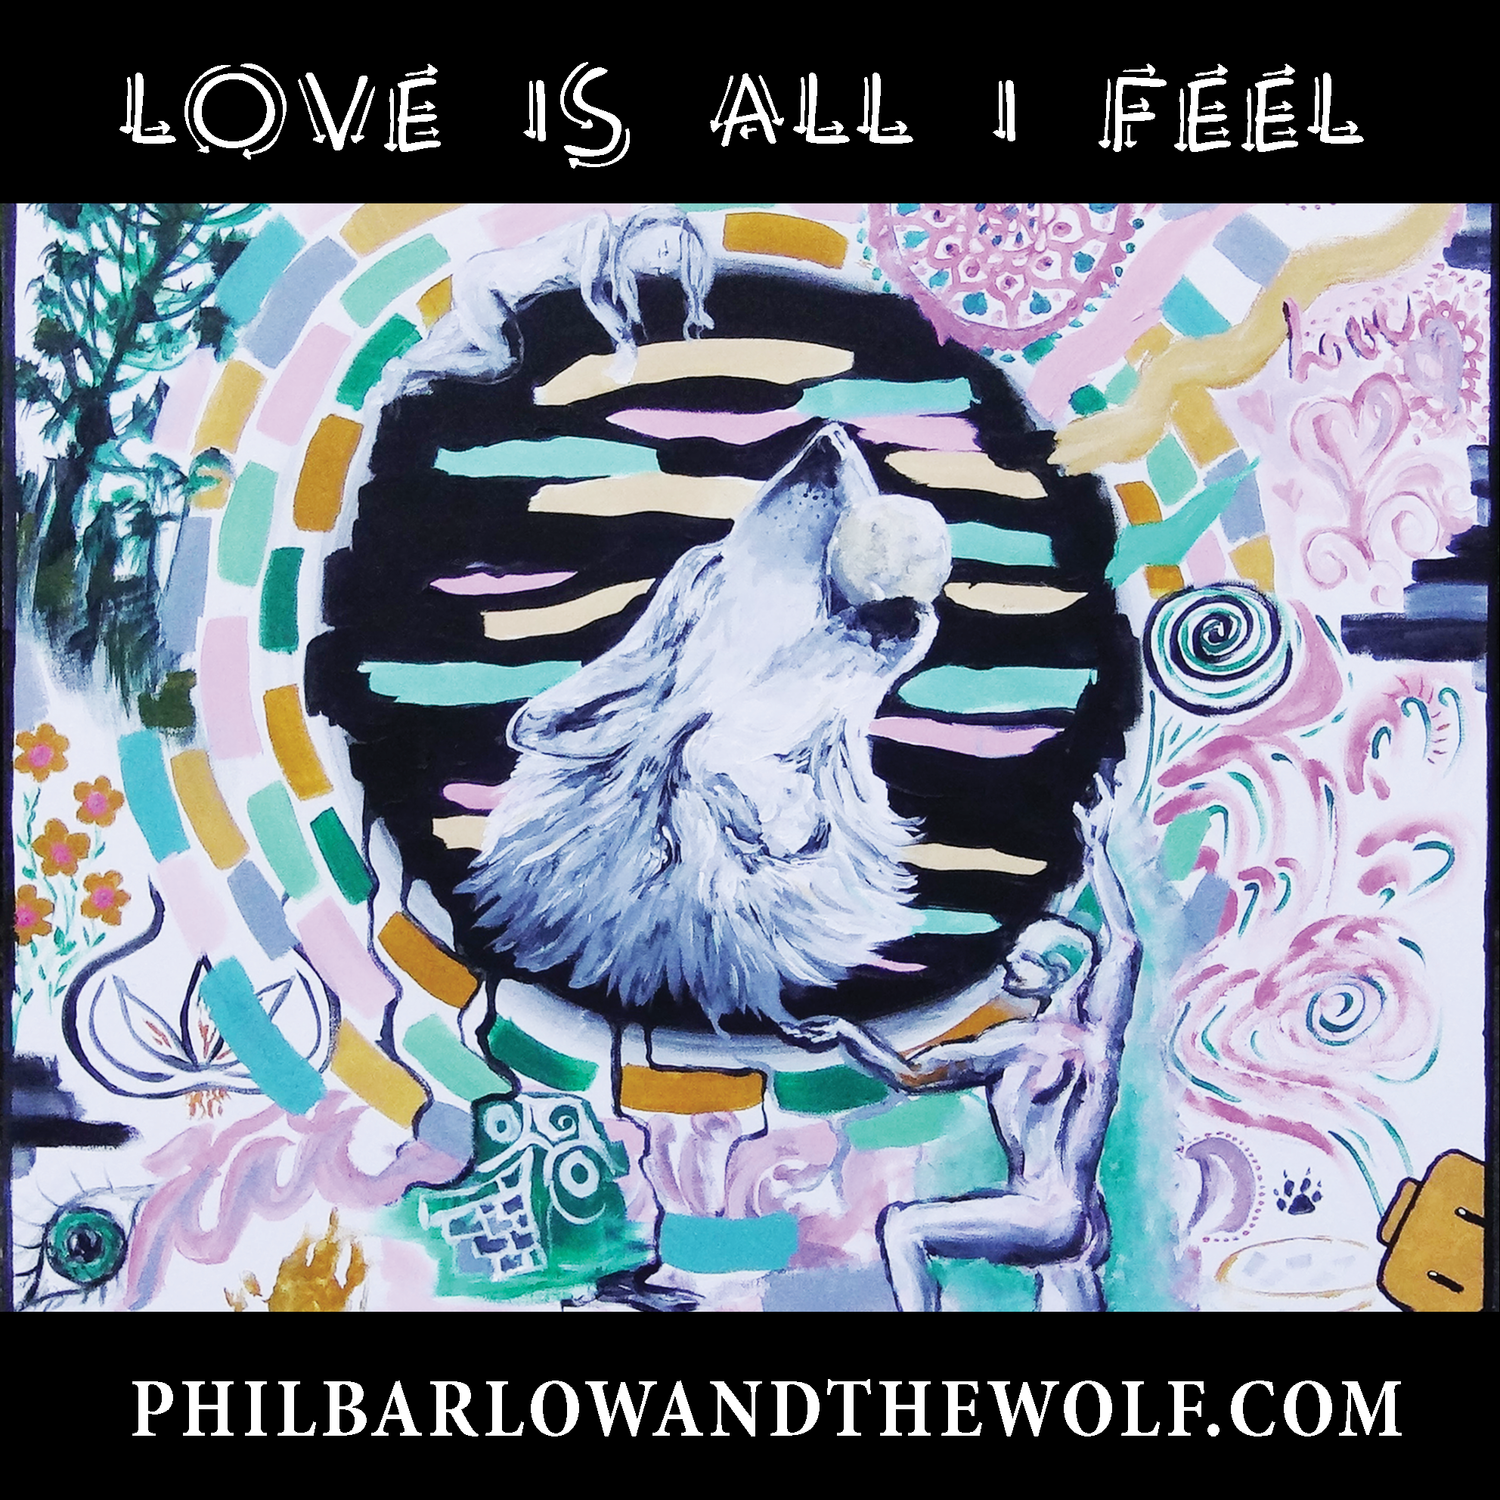 Love Is All I Feel' Free Download — Phil Barlow and The Wolf